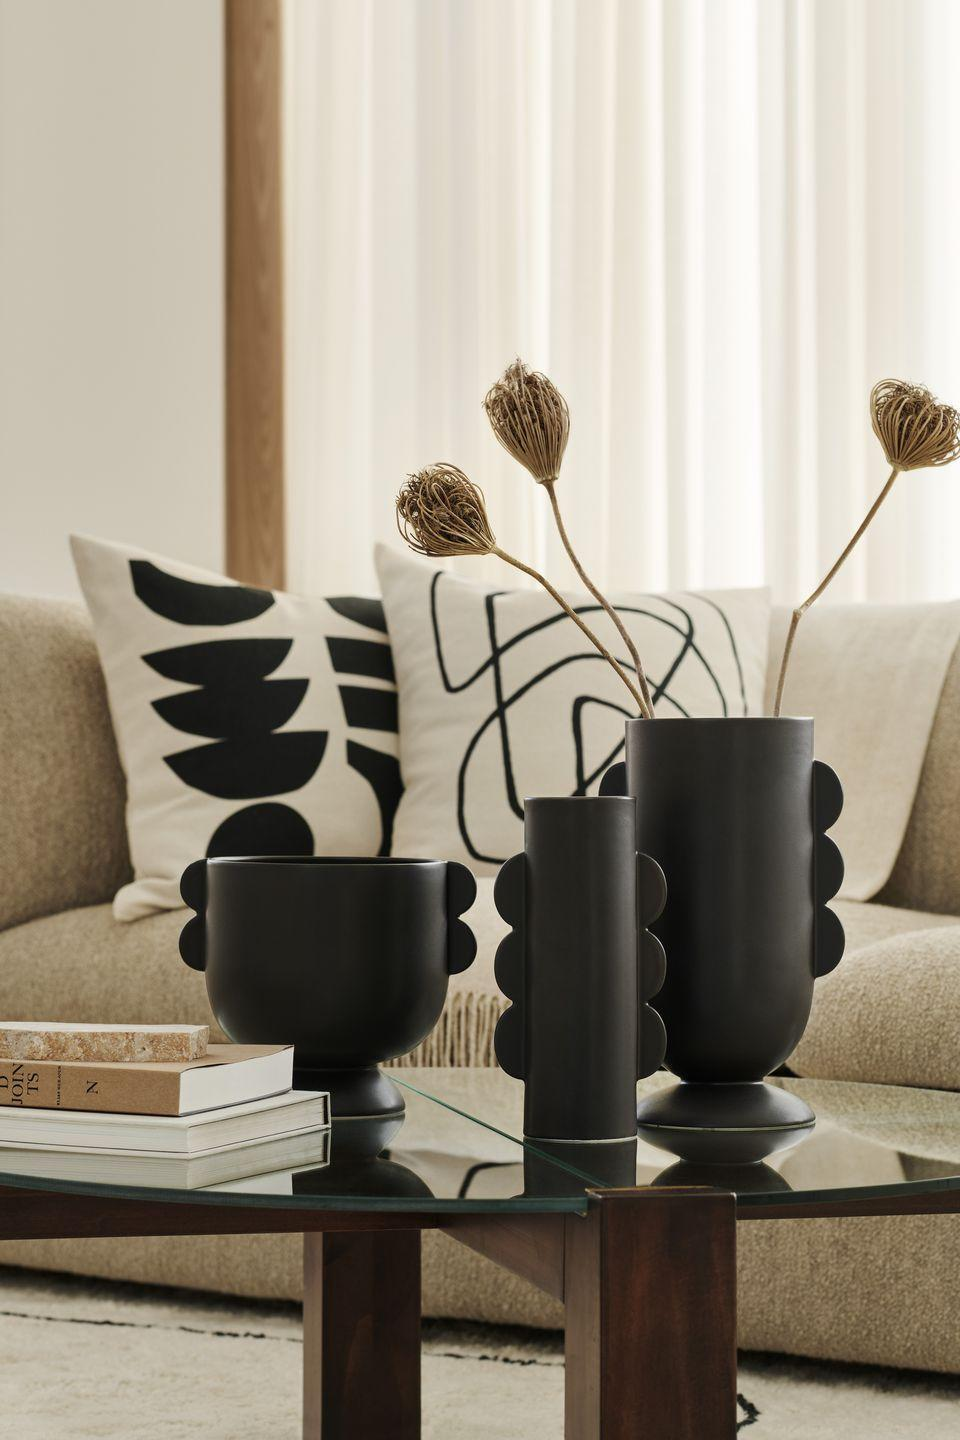 """<p>'Sculptures and sculptural shapes are central in this trend, where we inspire our customers to freshen up their homes and get ready to greet a lighter season,' say the team at H&M Home. </p><p><a class=""""link rapid-noclick-resp"""" href=""""https://go.redirectingat.com?id=127X1599956&url=https%3A%2F%2Fwww2.hm.com%2Fen_gb%2Fhome.html&sref=https%3A%2F%2Fwww.housebeautiful.com%2Fuk%2Flifestyle%2Fshopping%2Fg35116386%2Fhandm-home-spring%2F"""" rel=""""nofollow noopener"""" target=""""_blank"""" data-ylk=""""slk:SHOP H&M HOME"""">SHOP H&M HOME</a> </p>"""